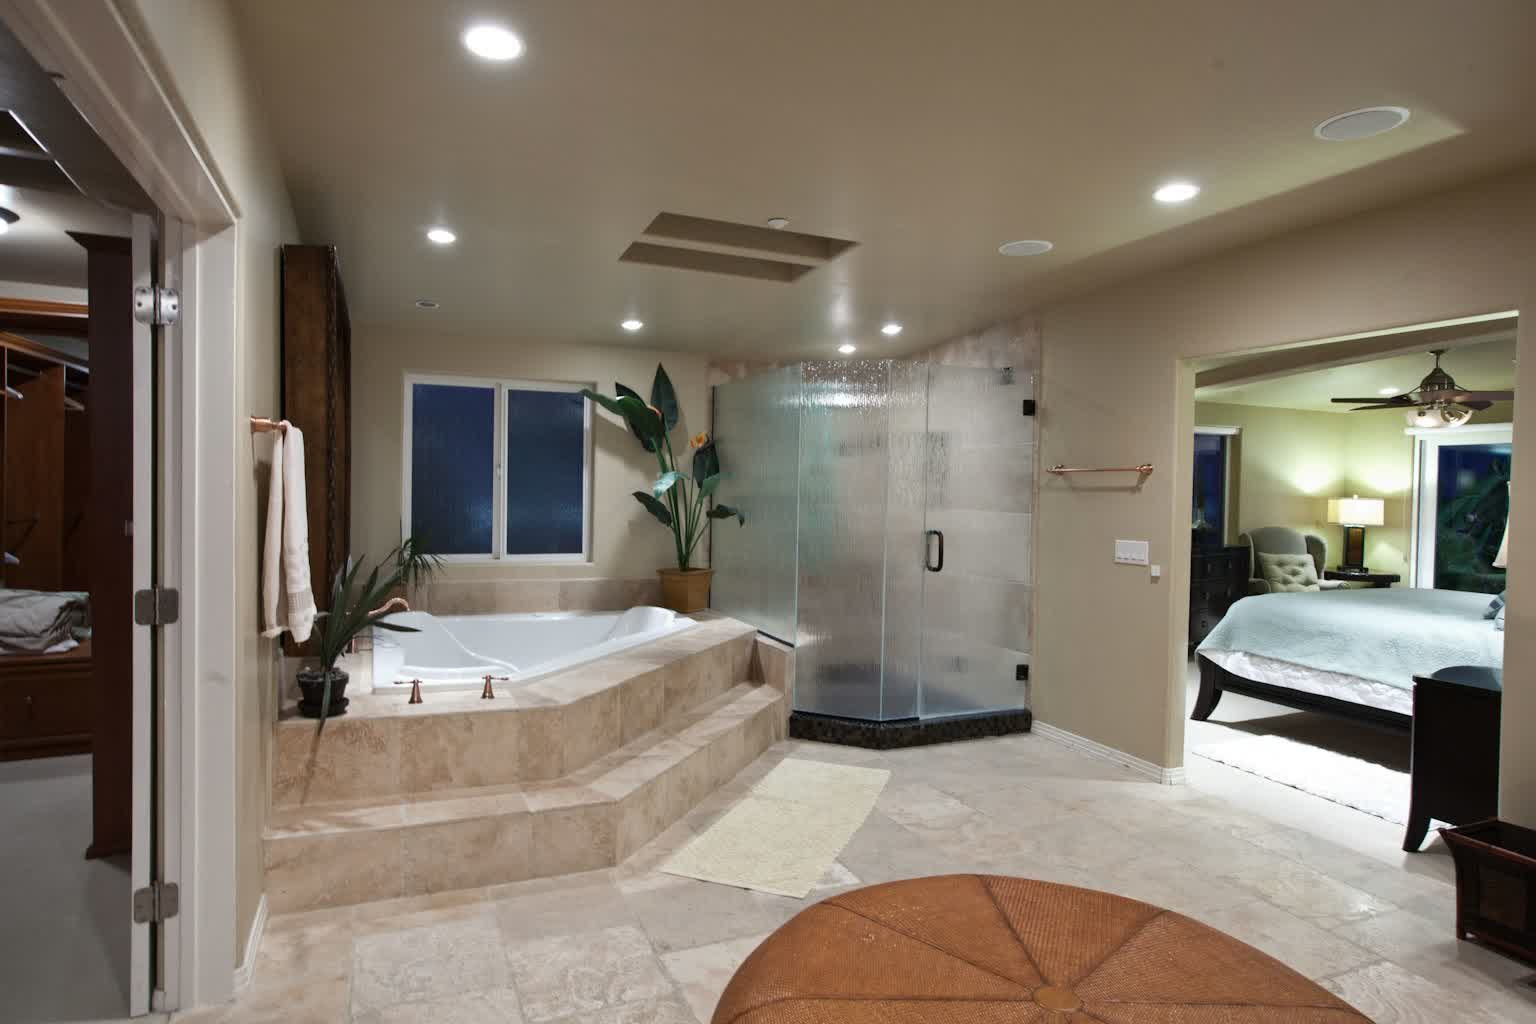 Wonderful Beautiful Master Bathroom Designs Images Dimensions